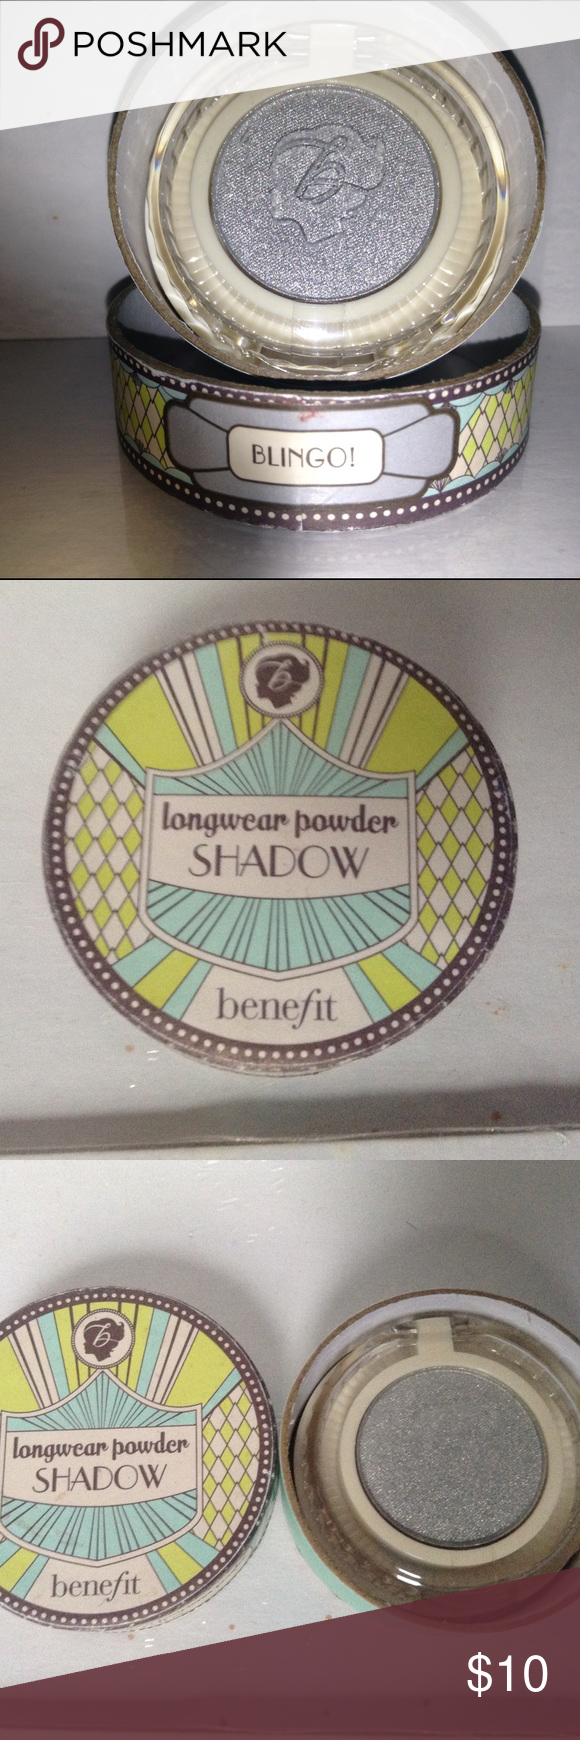 Limited Edition Benefit Longwear Powder Shadow. Color : Blingo! The box isn't perfect but the eyeshadow was never used or swatched! Only 2 available! Benefit Makeup Eyeshadow